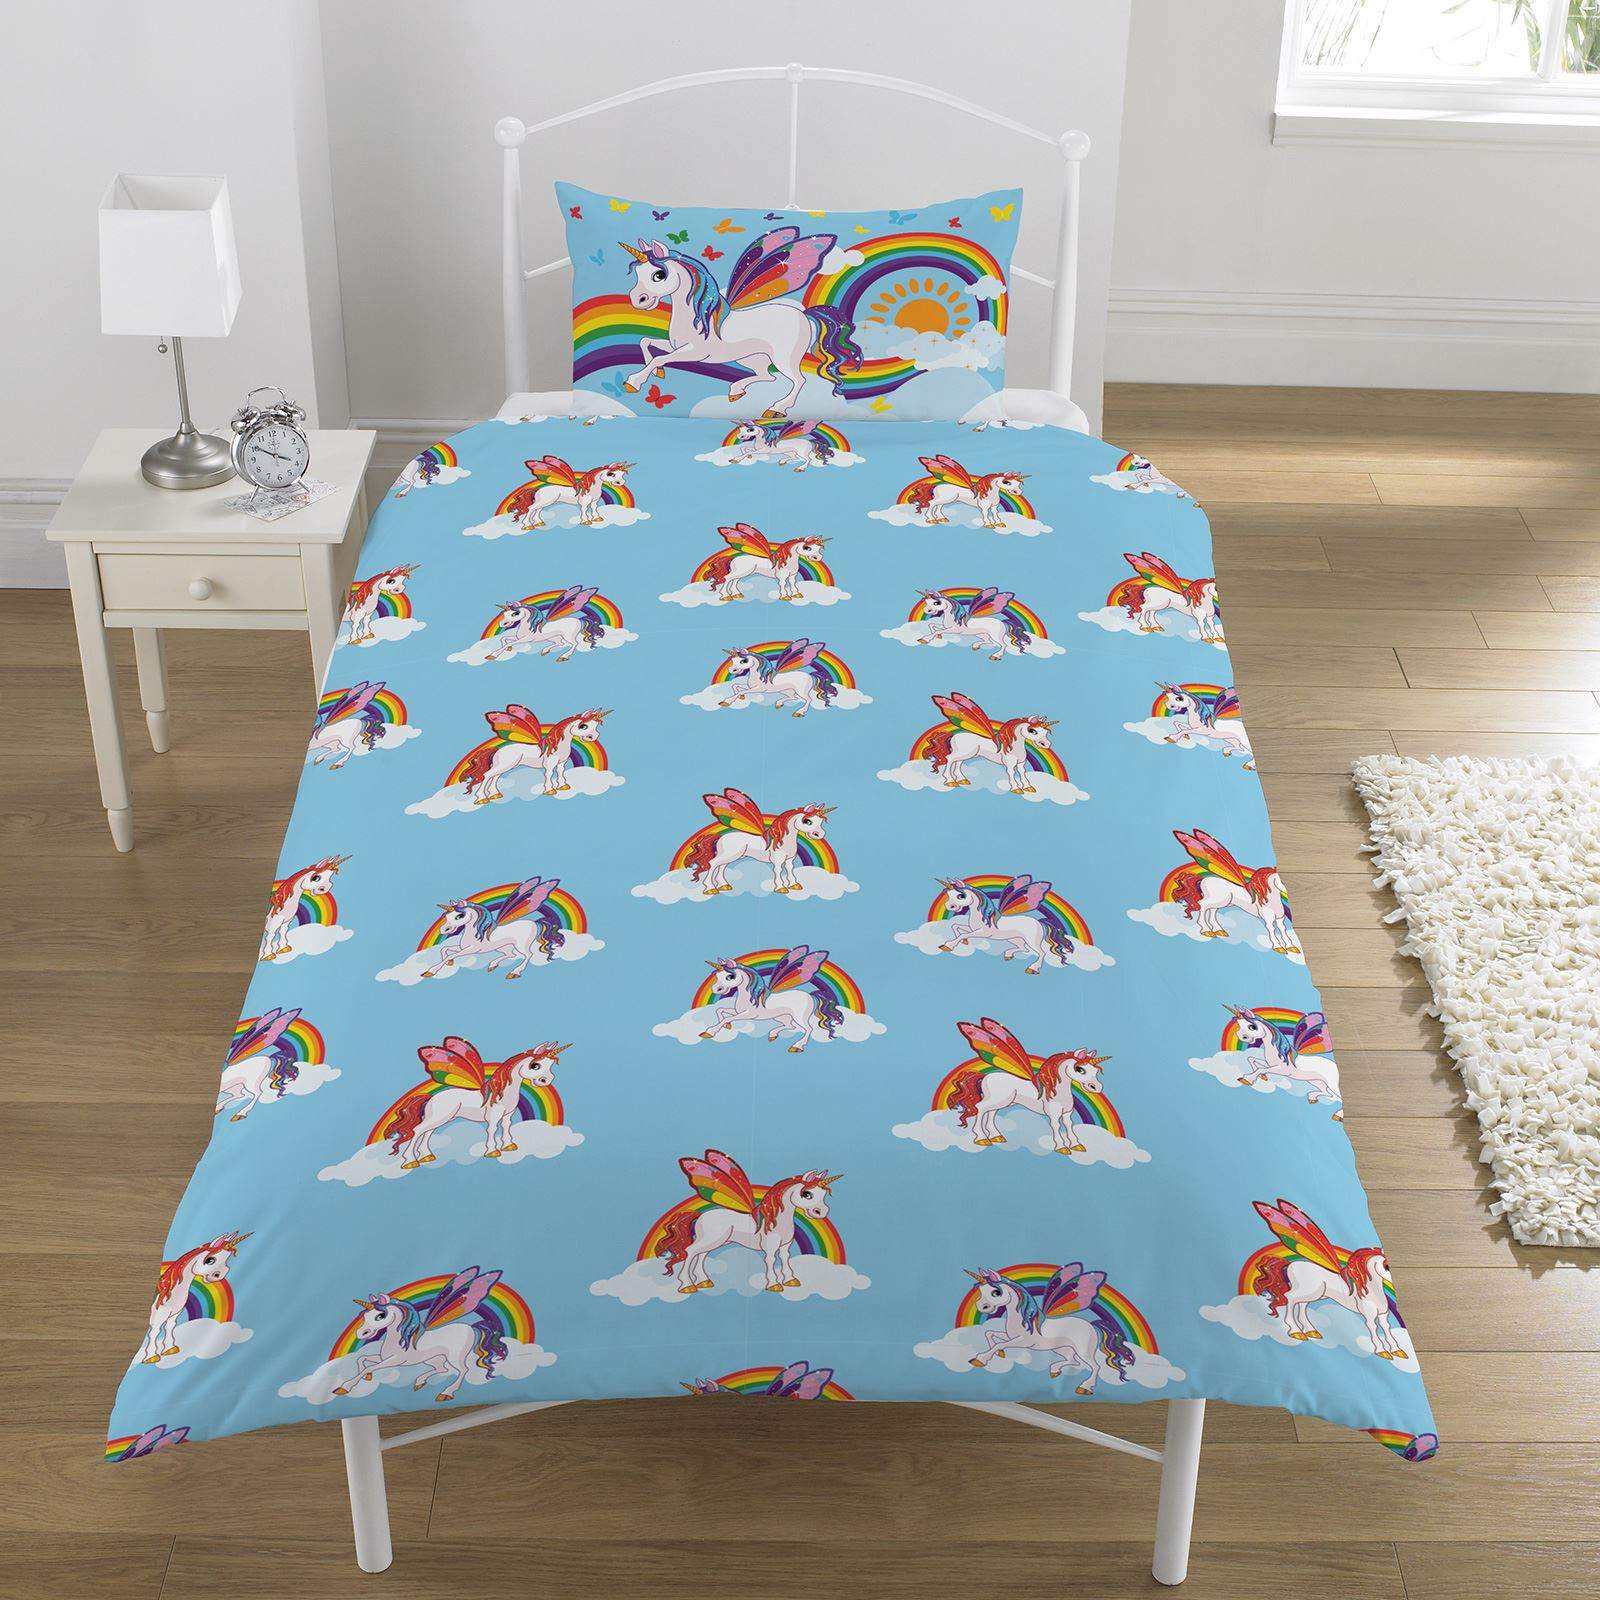 regenbogen einh rner einzelbettbezug set wende kinder m dchen bettw sche pferde ebay. Black Bedroom Furniture Sets. Home Design Ideas